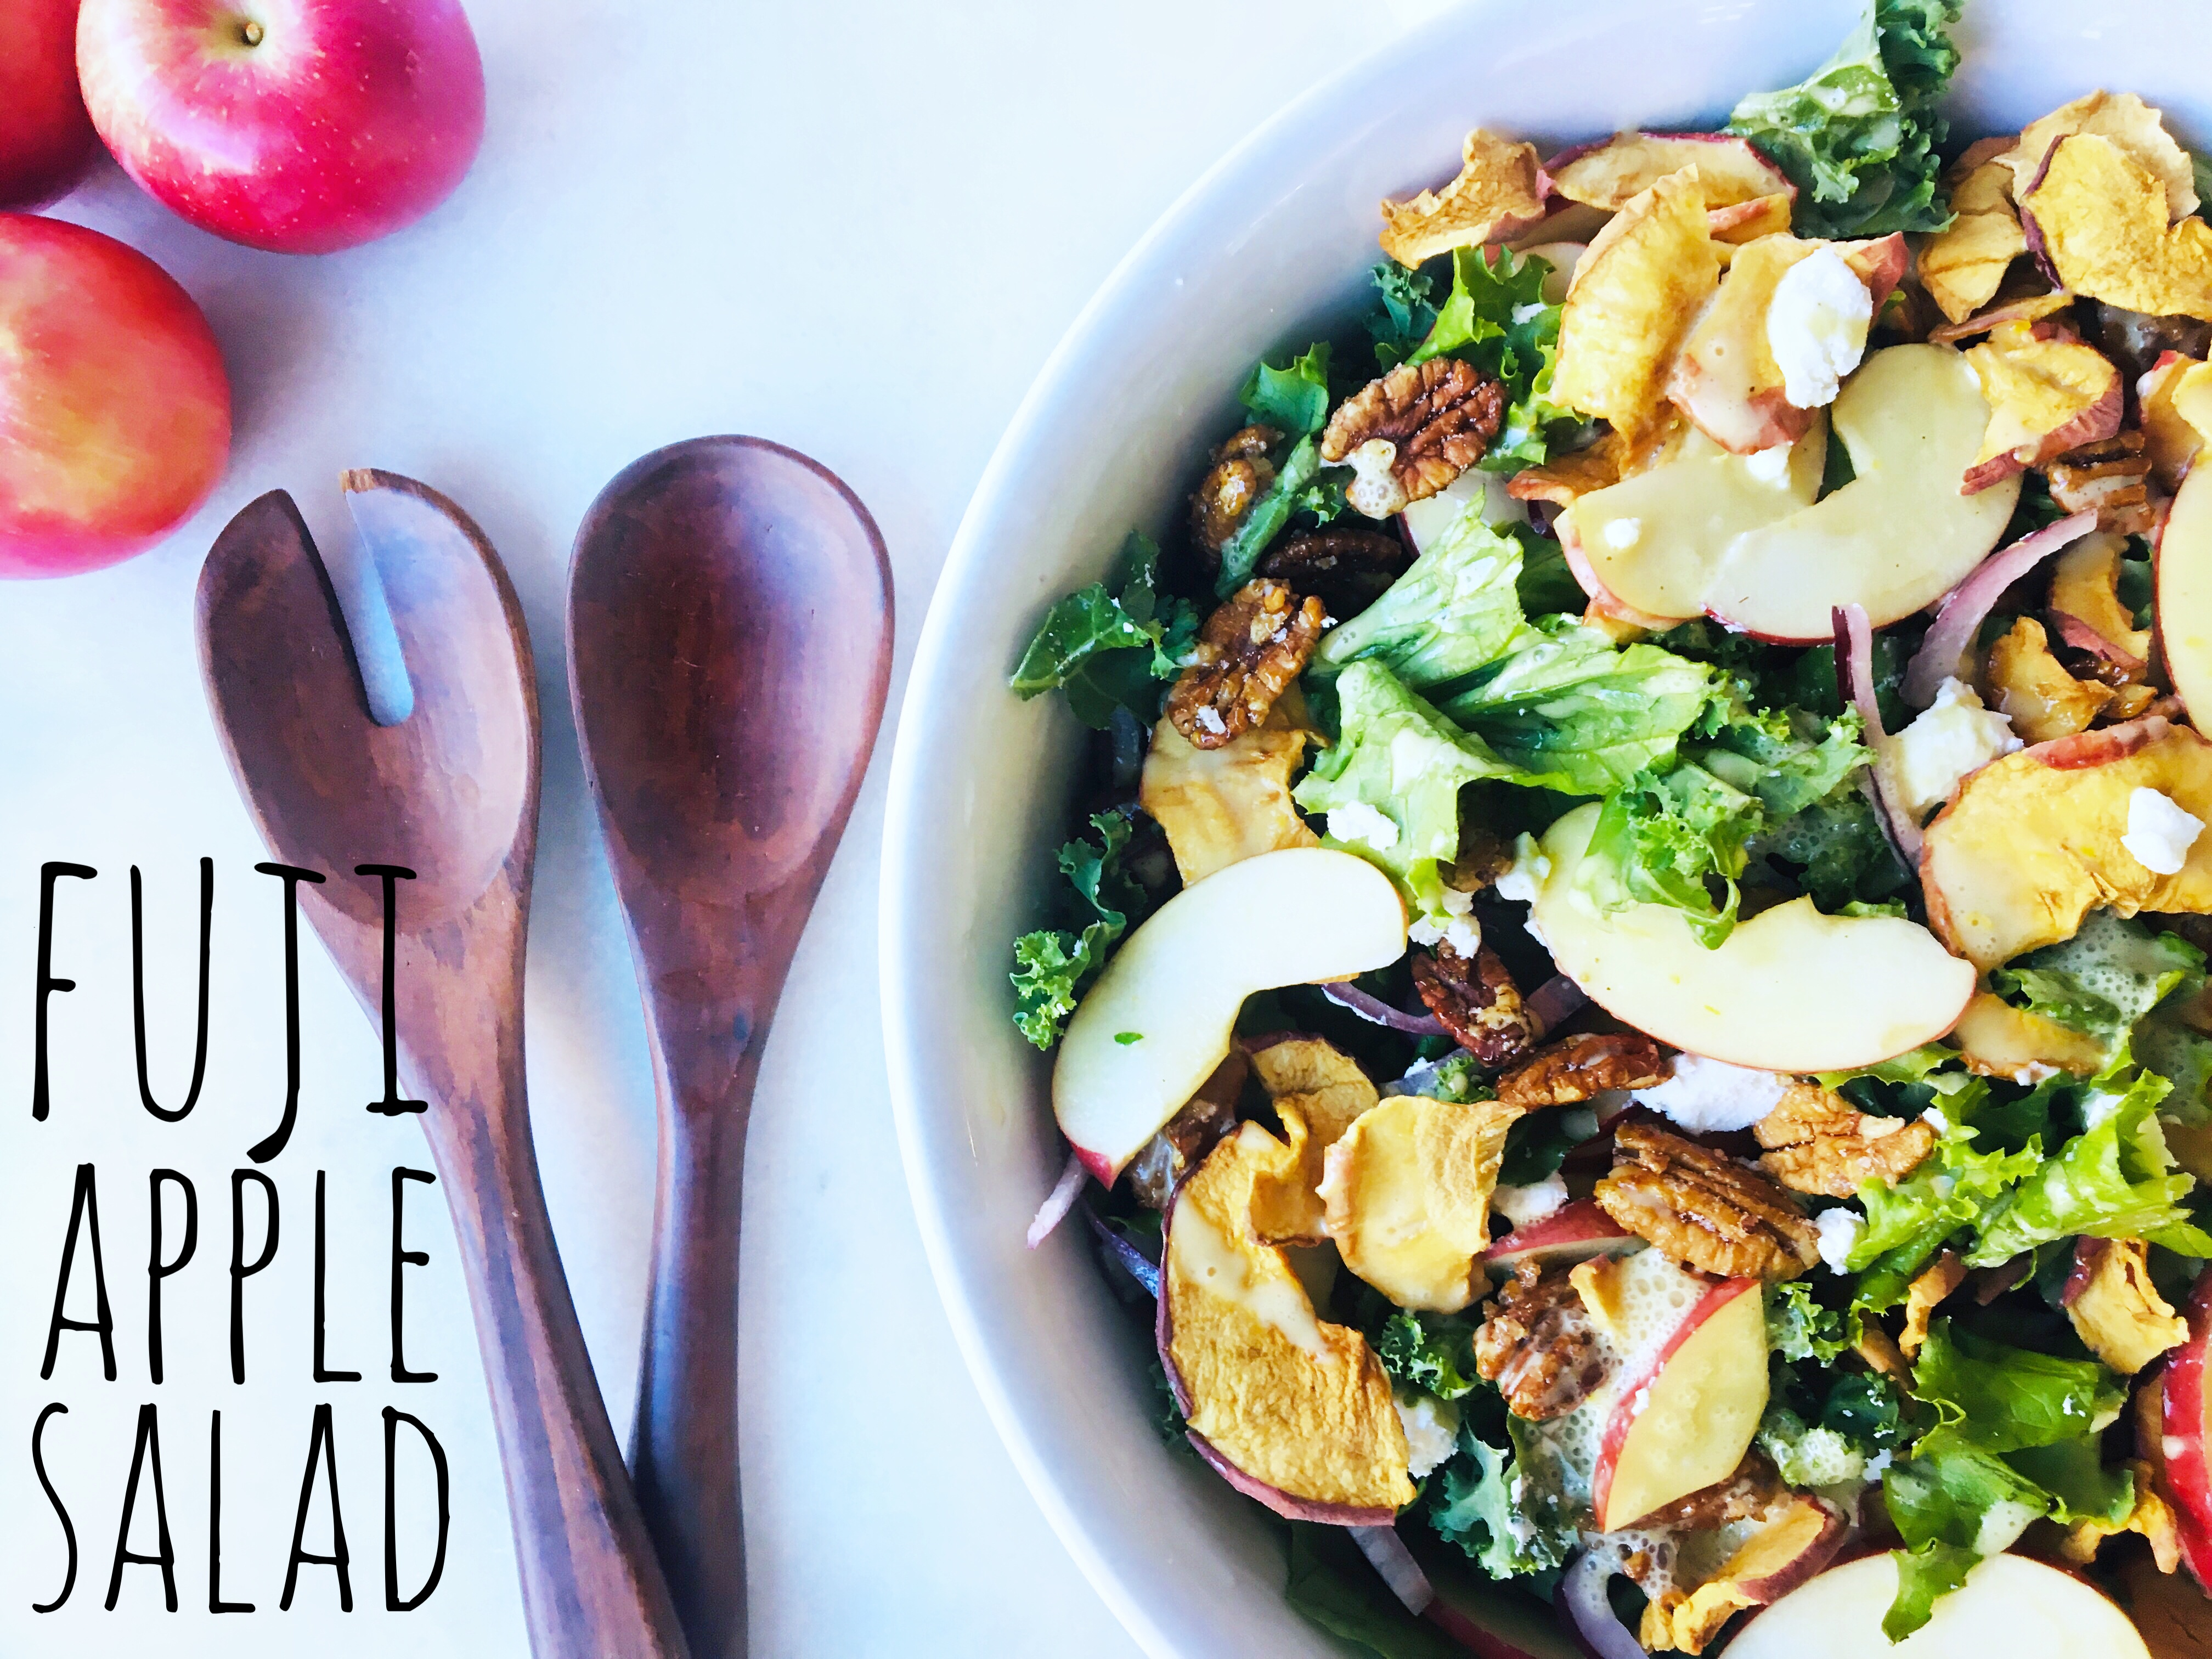 try our green salad tossed with fresh fuji apples, apple chips, toasted pecans, feta cheese and a Fuji Apple dressing